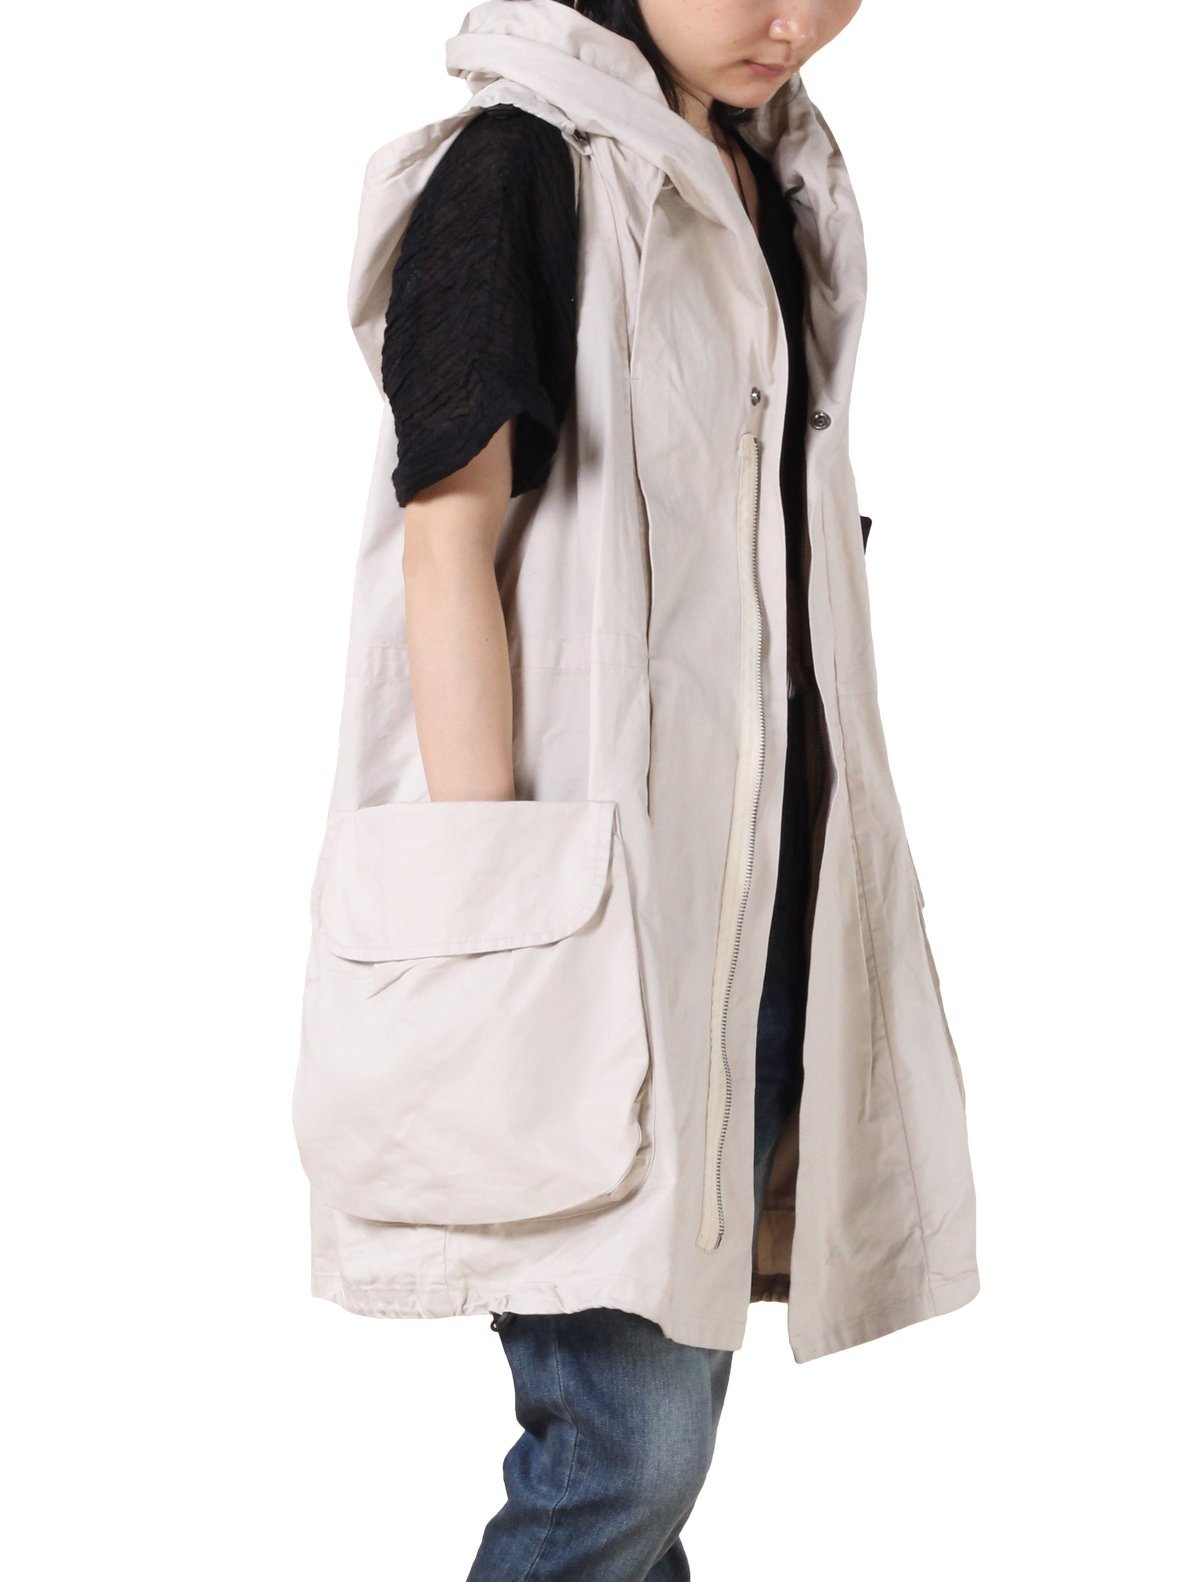 Mordenmiss Women's Sleeveless Coat Vest Hoodie Waistcoat Anoraks with Big Pockets Style 1 M Sand